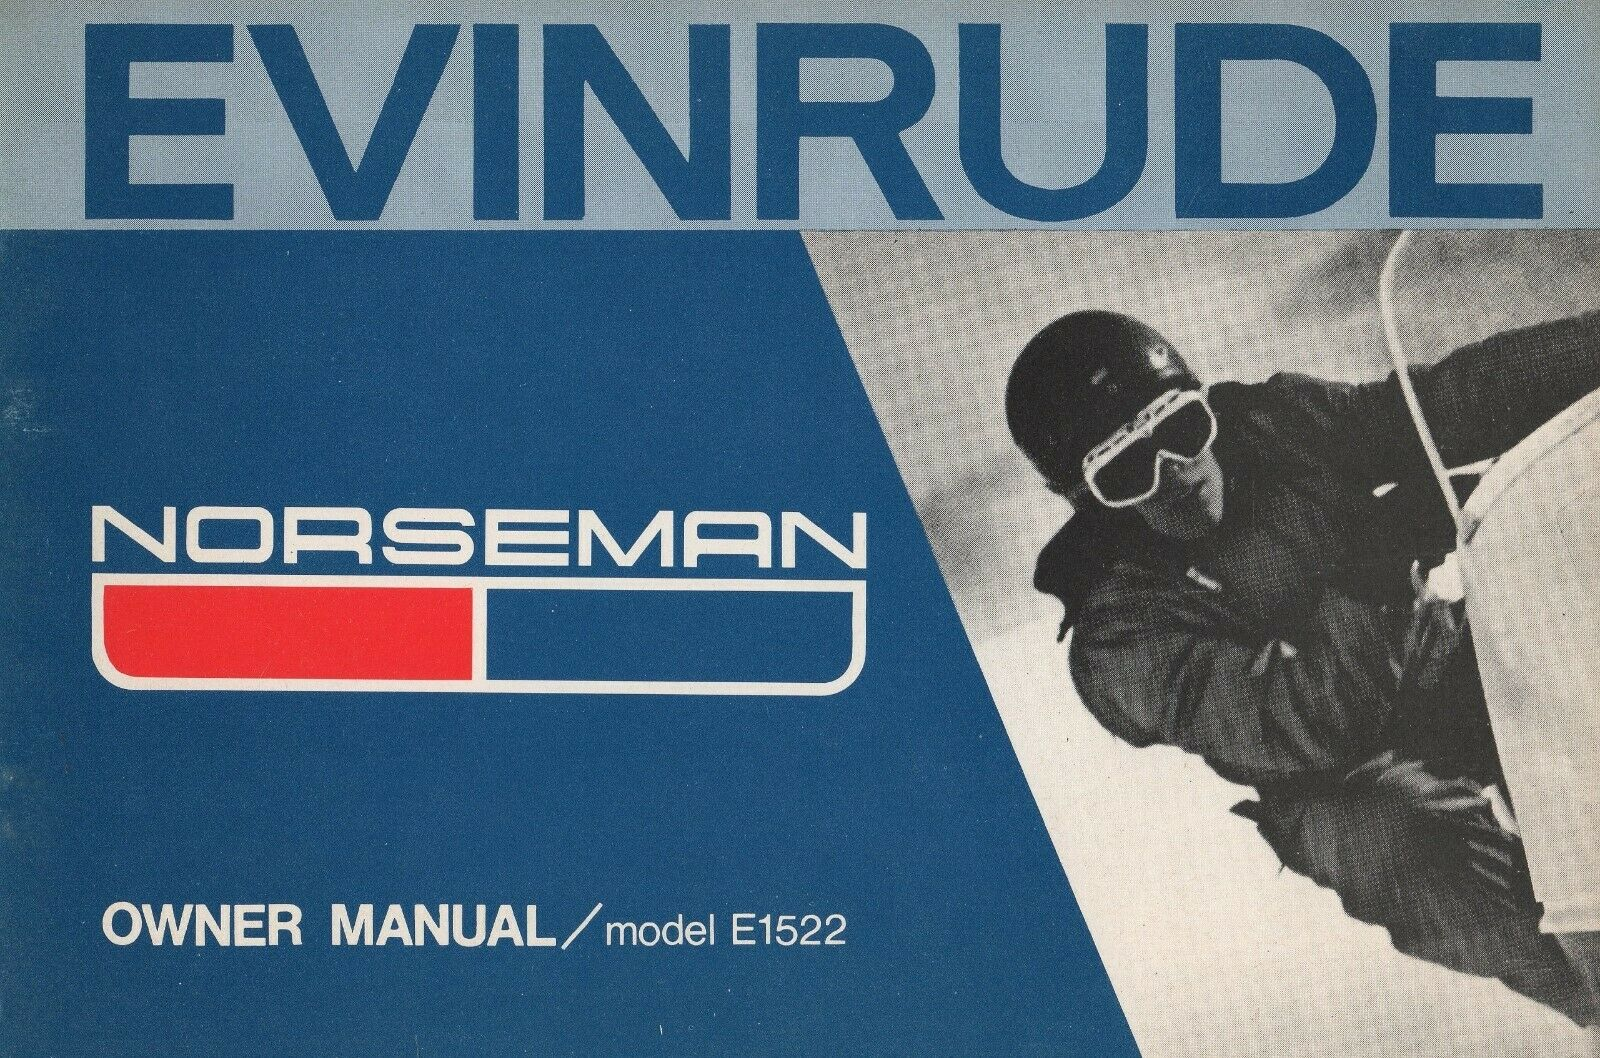 1972 EVINRUDE SNOWMOBILE NORSEMAN OWNERS  MANUAL P N 290594 (226)  no.1 online